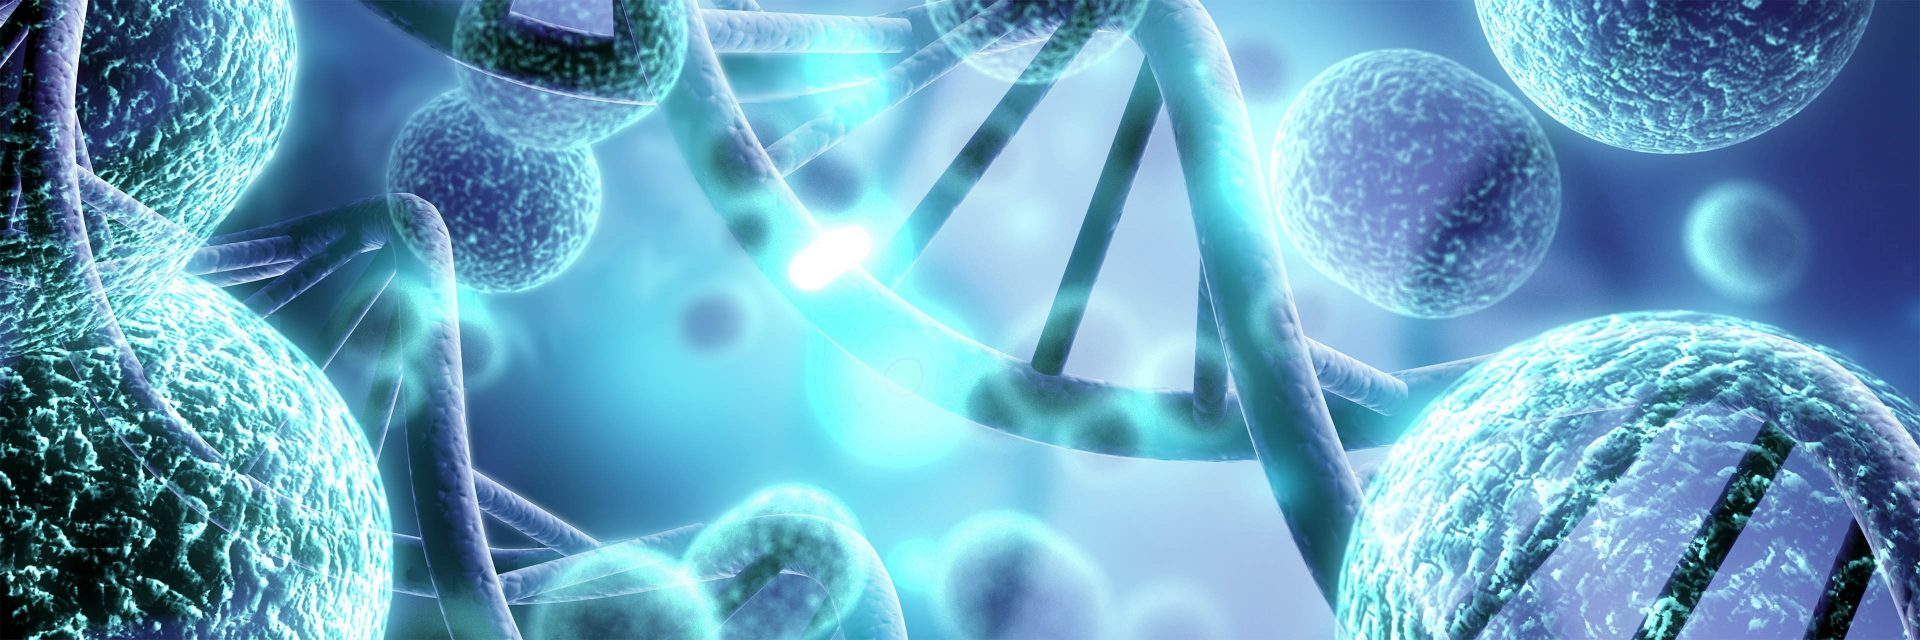 abstract of cells and DNA needed for Advanced Therapy medicines